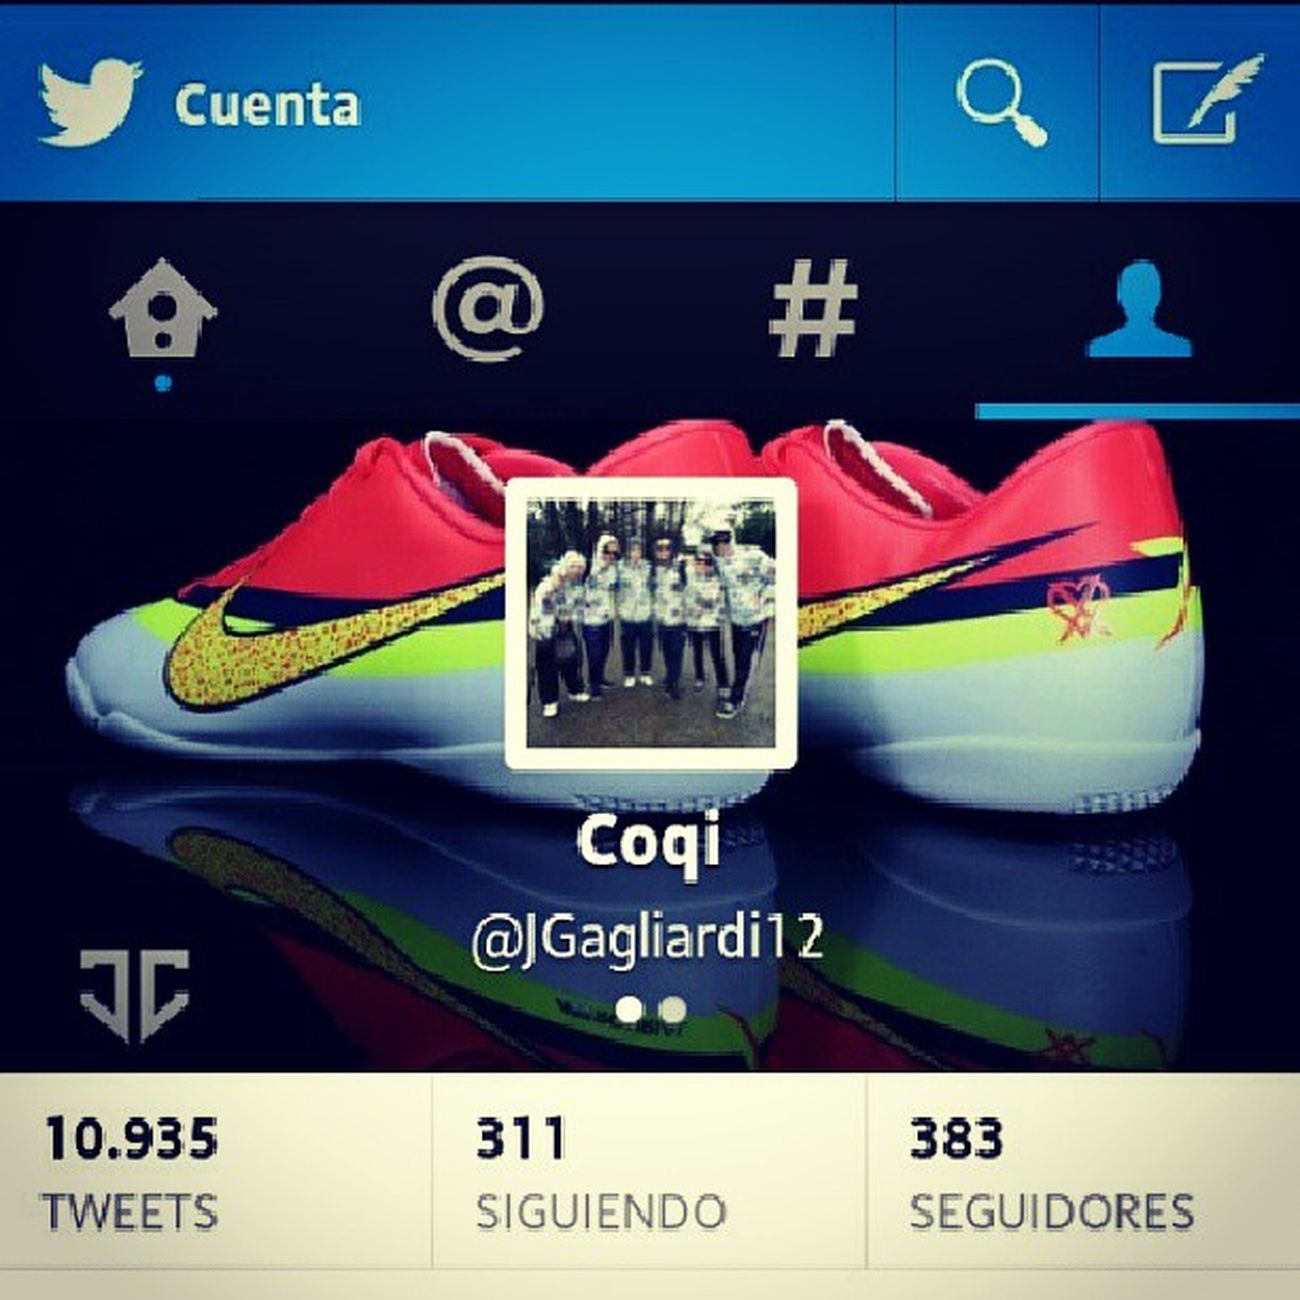 Followme Twitter Follow Jgagliardi12 tweet nike